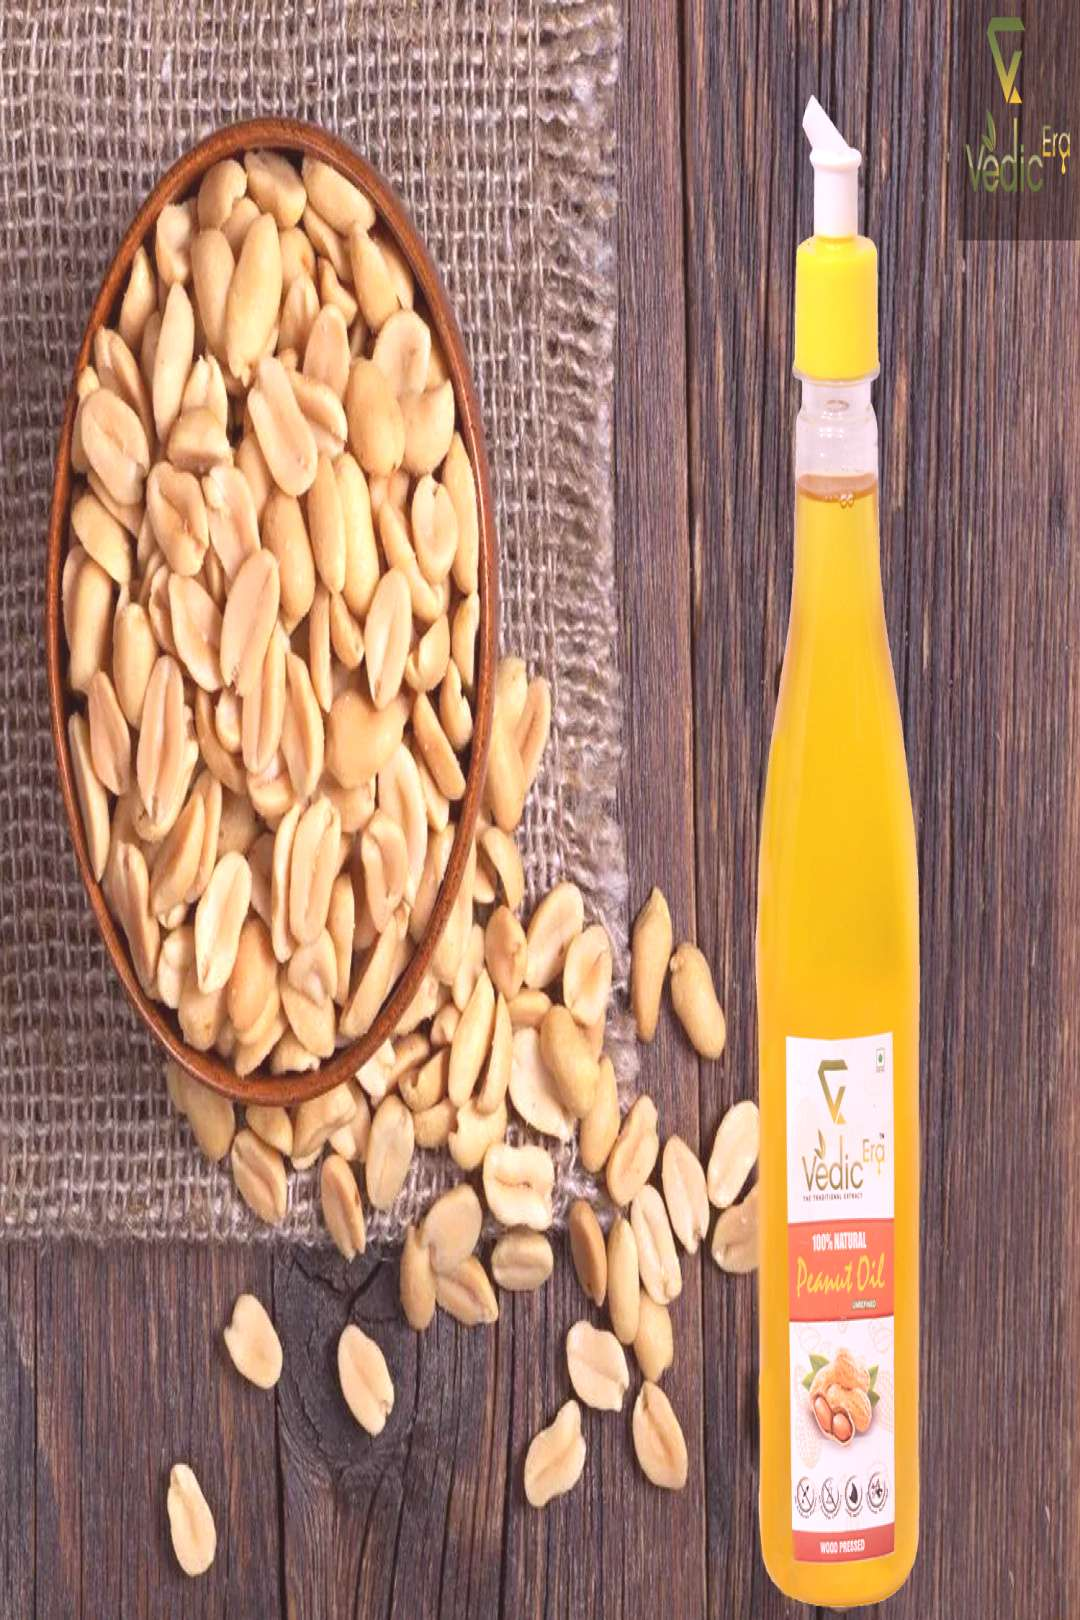 Did You Know? Did You Know? Peanut Oil is One of The Stable Cooking Oil Which Has a long Shelf Life